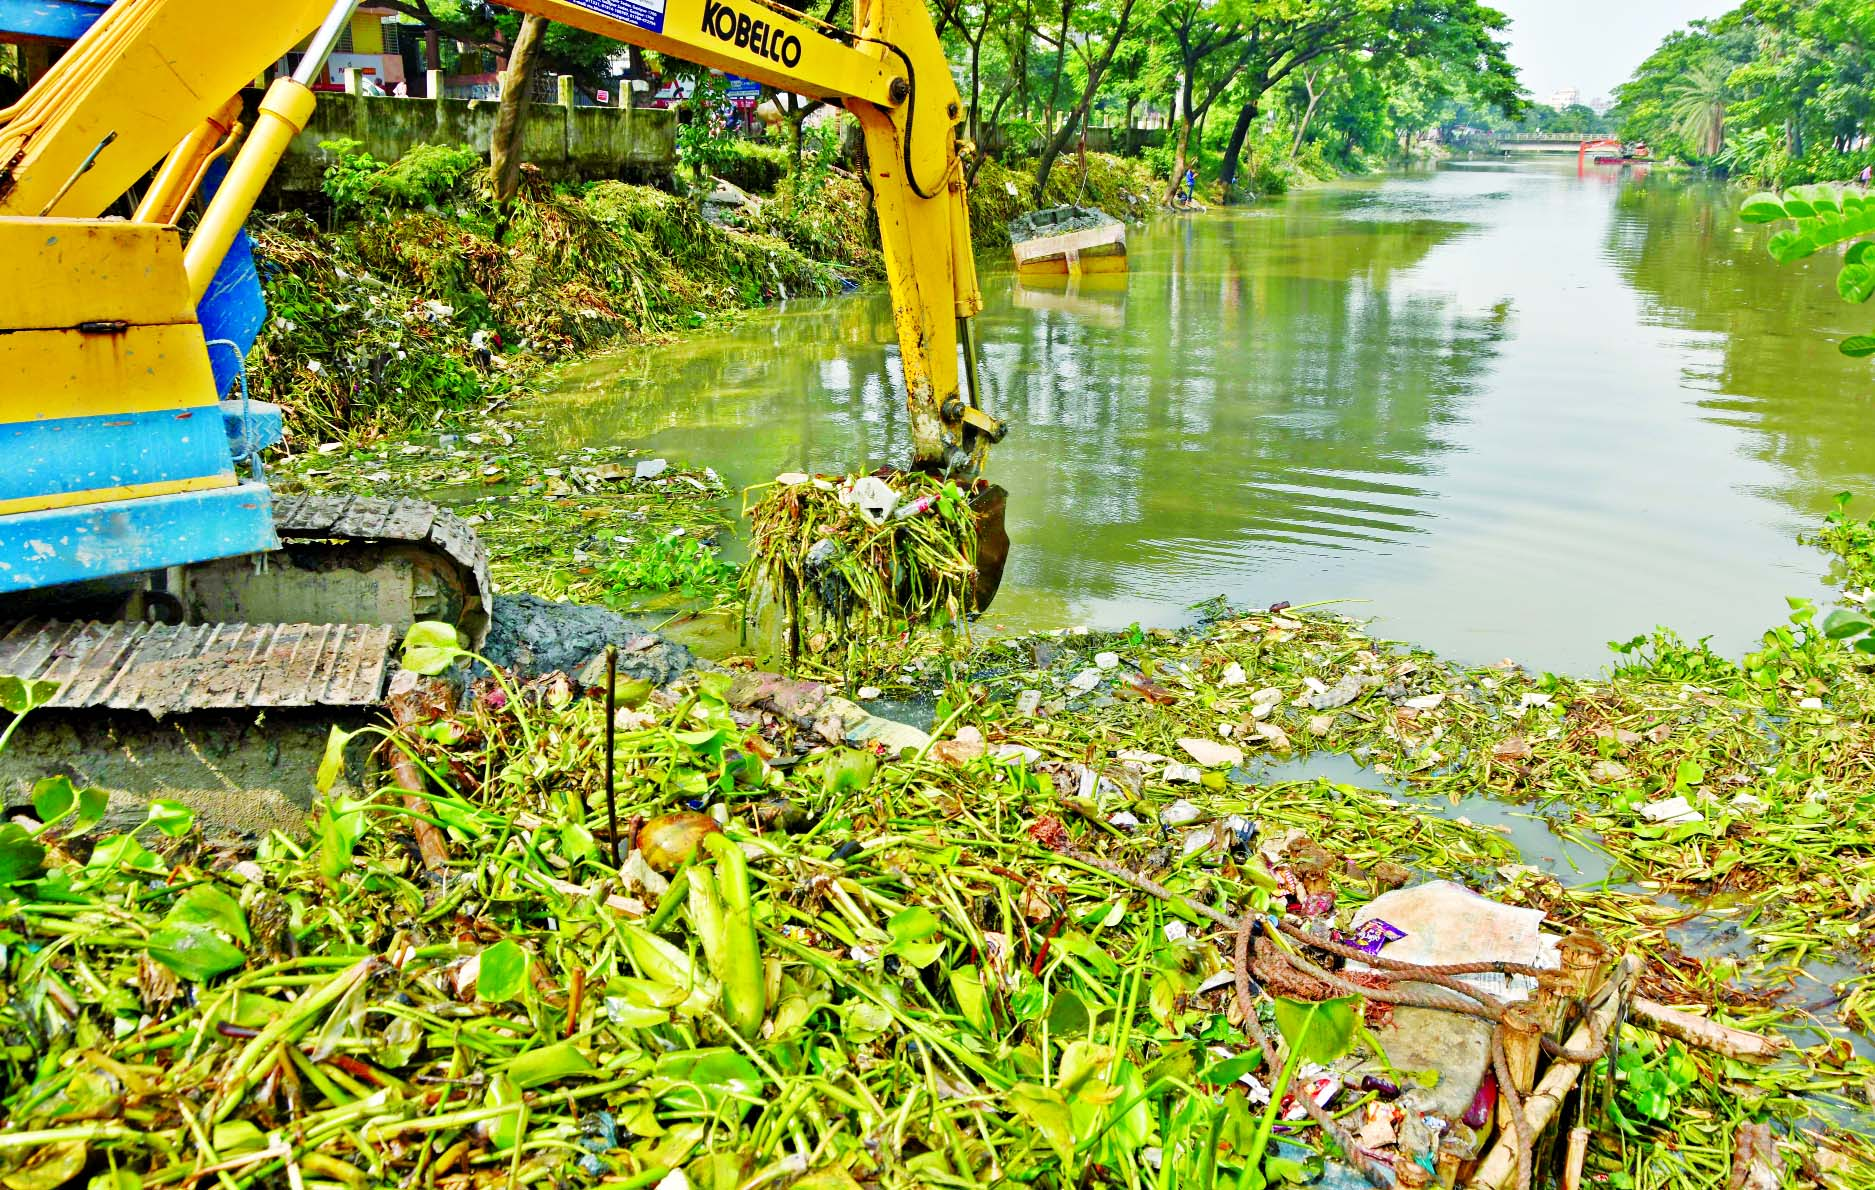 Dhaka South City Corporation authority removing waste to keep free from dengue menace. This photo was taken from city's Matuail canal on Tuesday.